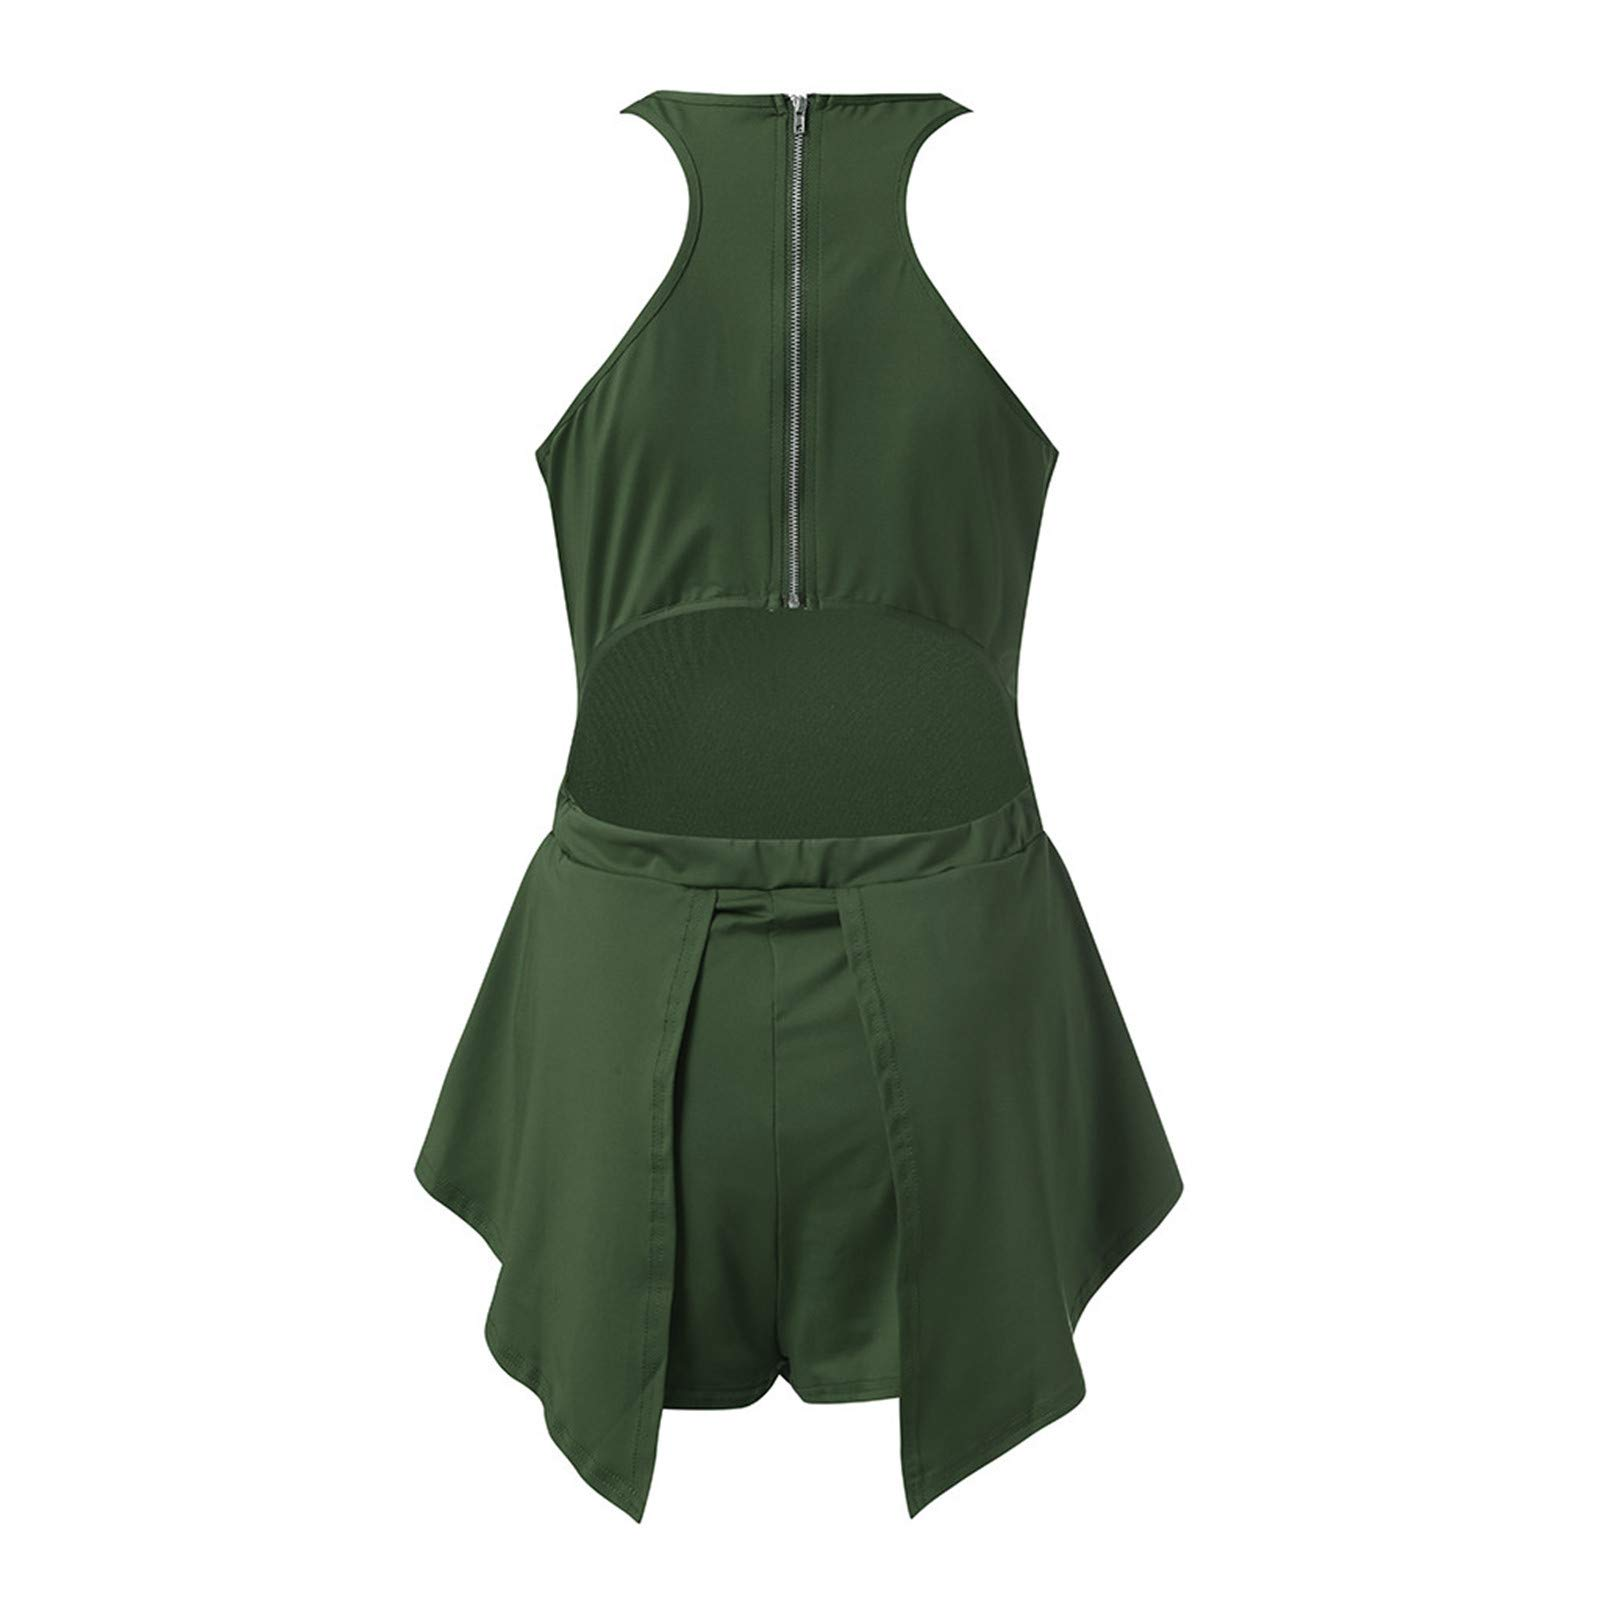 Thenxin Womens Halter Beach Jumpsuit Sleeveless Solid Color Zipper Back Ruffle Hem Holiday Rompers(Green,L) by Thenxin (Image #3)